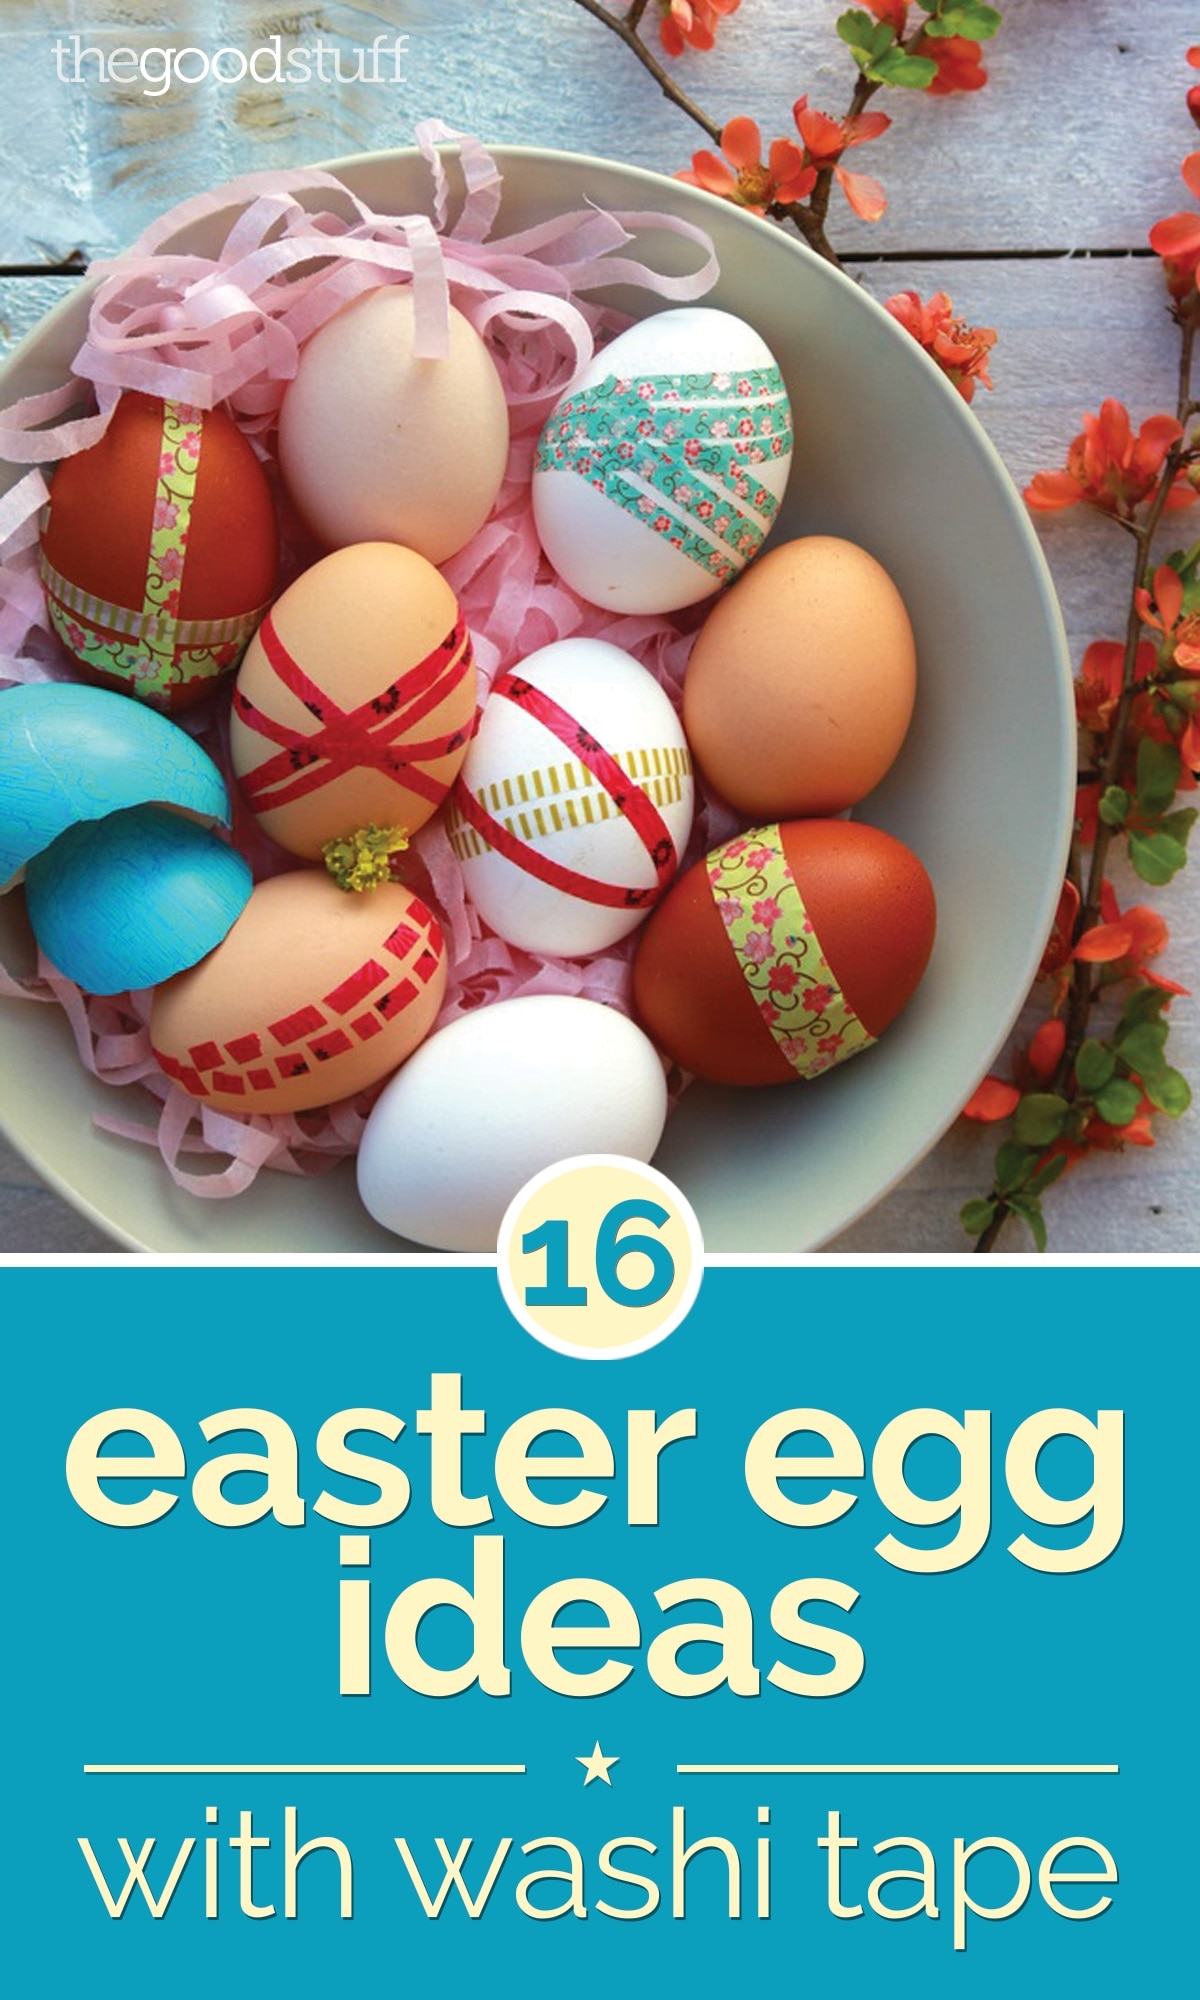 diy-easter-egg-washi-tape-ideas